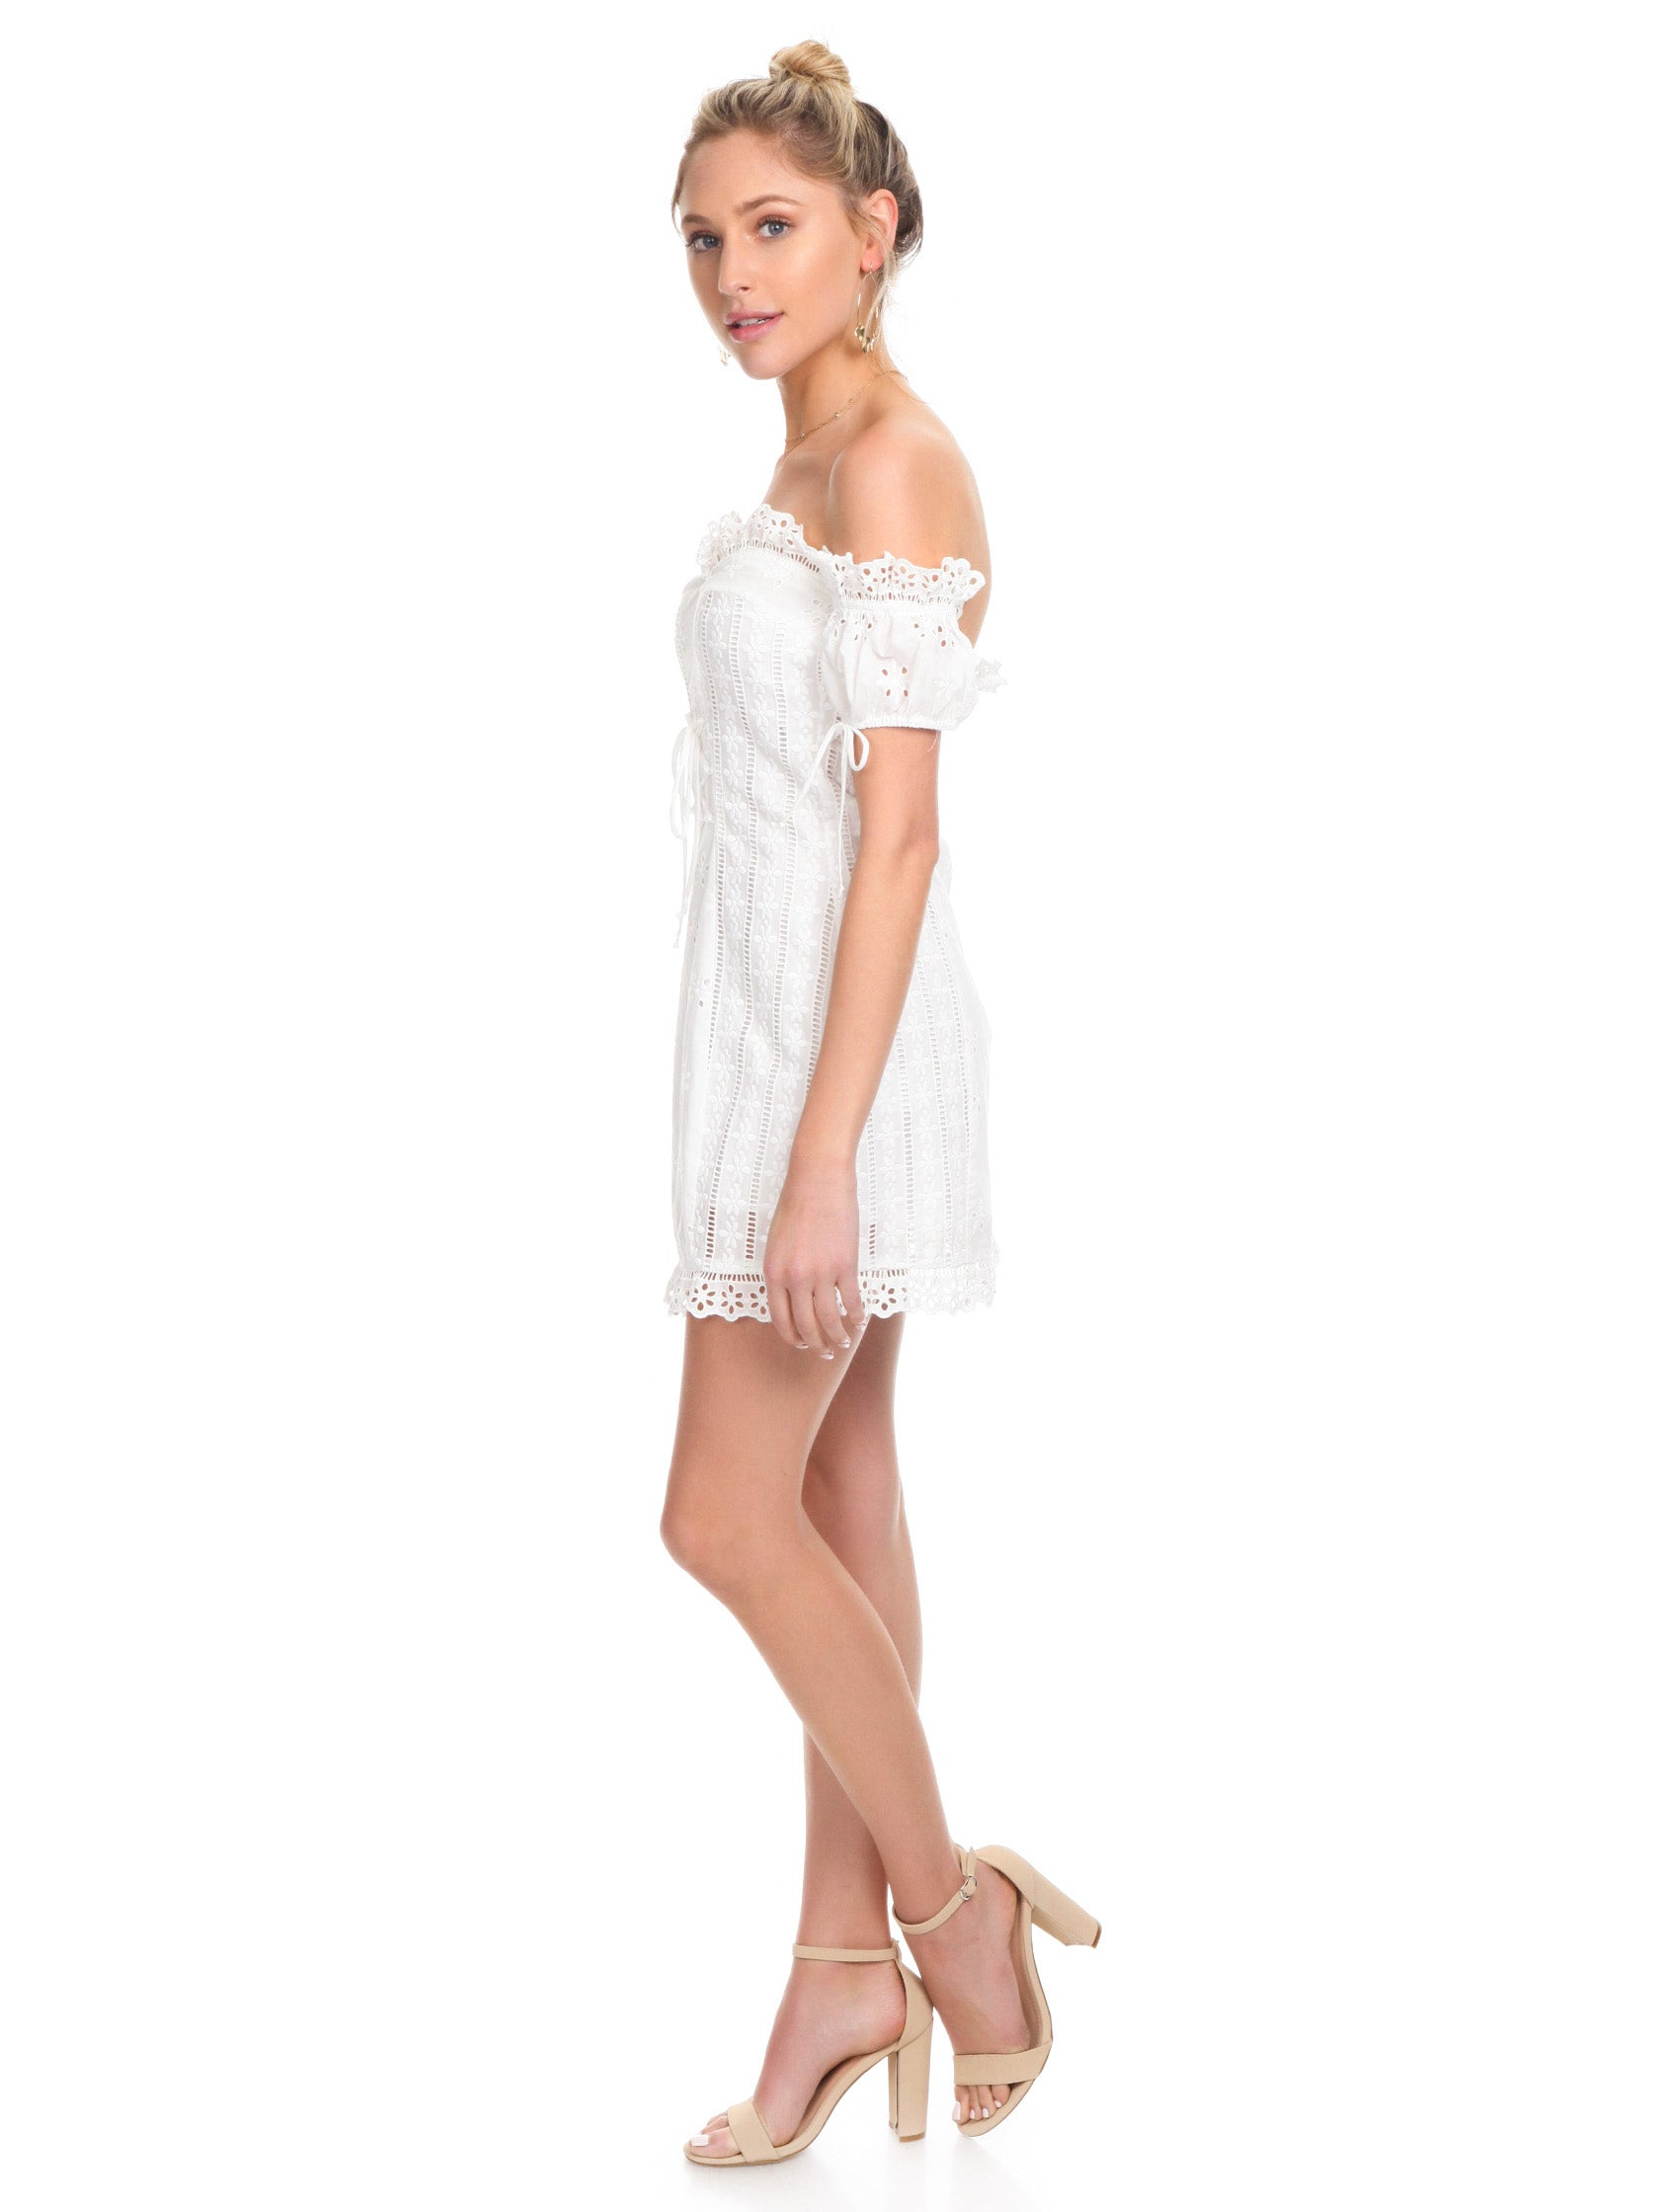 Woman wearing a dress rental from For Love & Lemons called Anabelle Eyelet Lace Up Dress